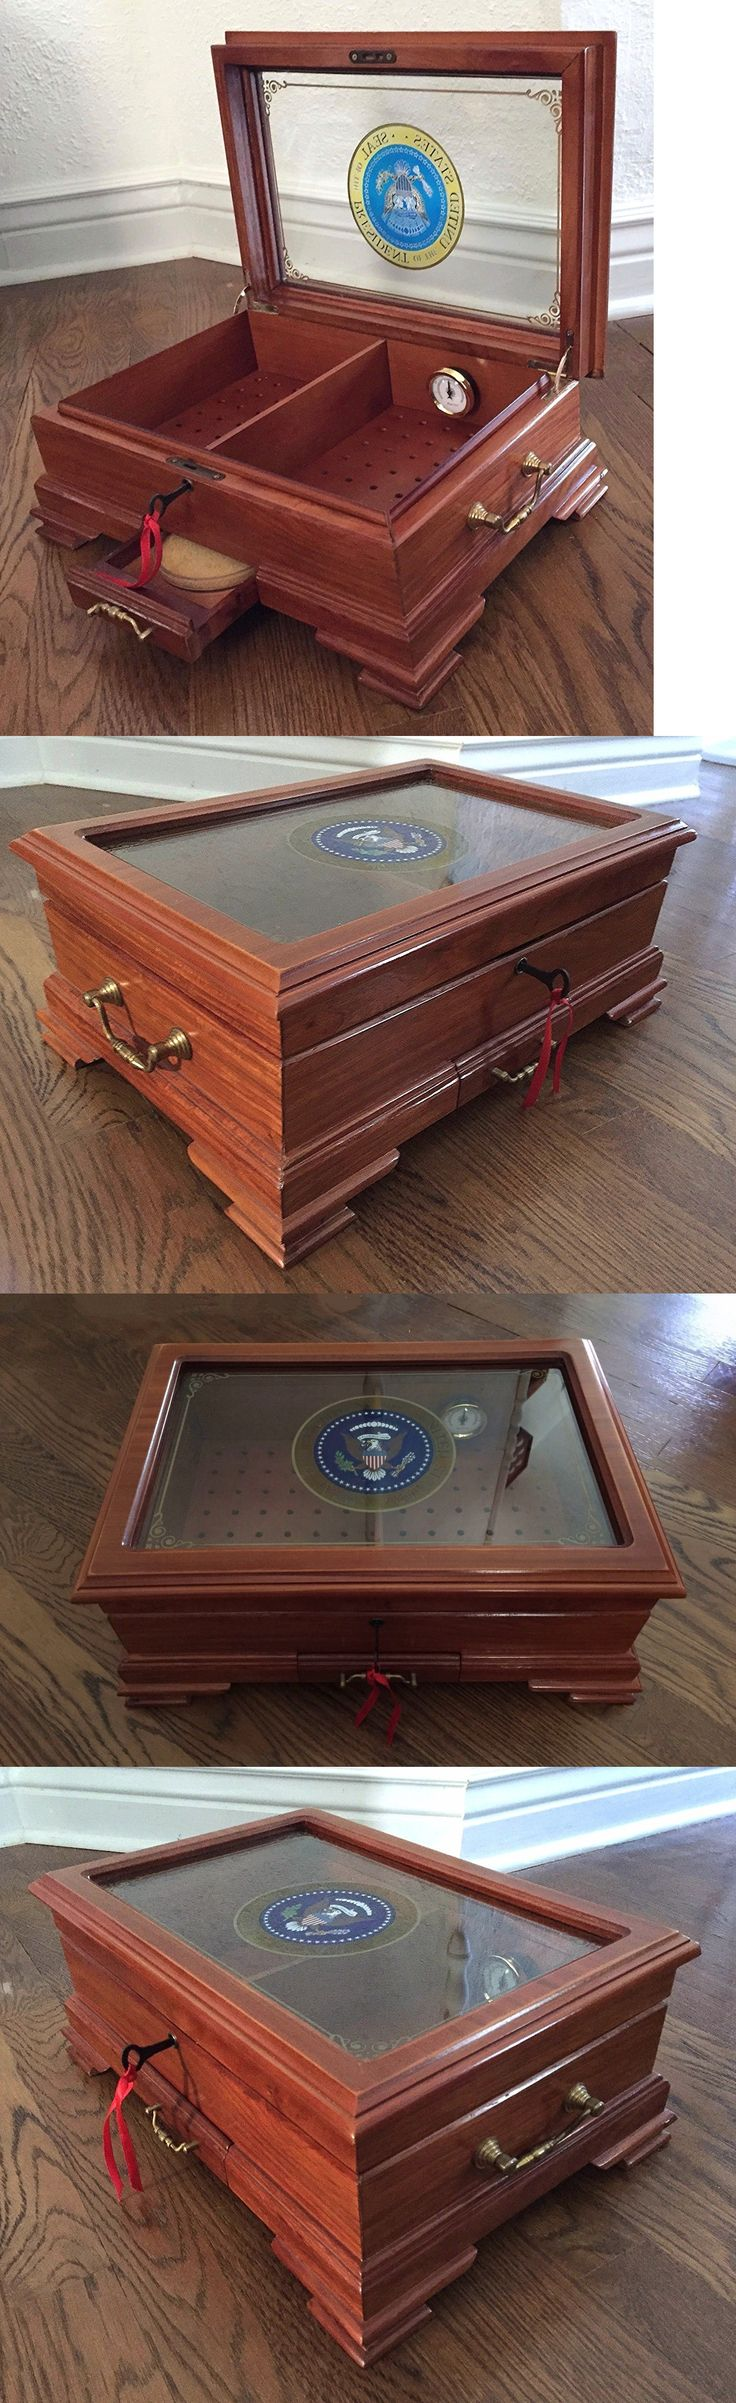 Bill Clinton: Presidential Seal 1997 President Bill Clinton Era White House Gift Cigar Humidor -> BUY IT NOW ONLY: $2495 on eBay!